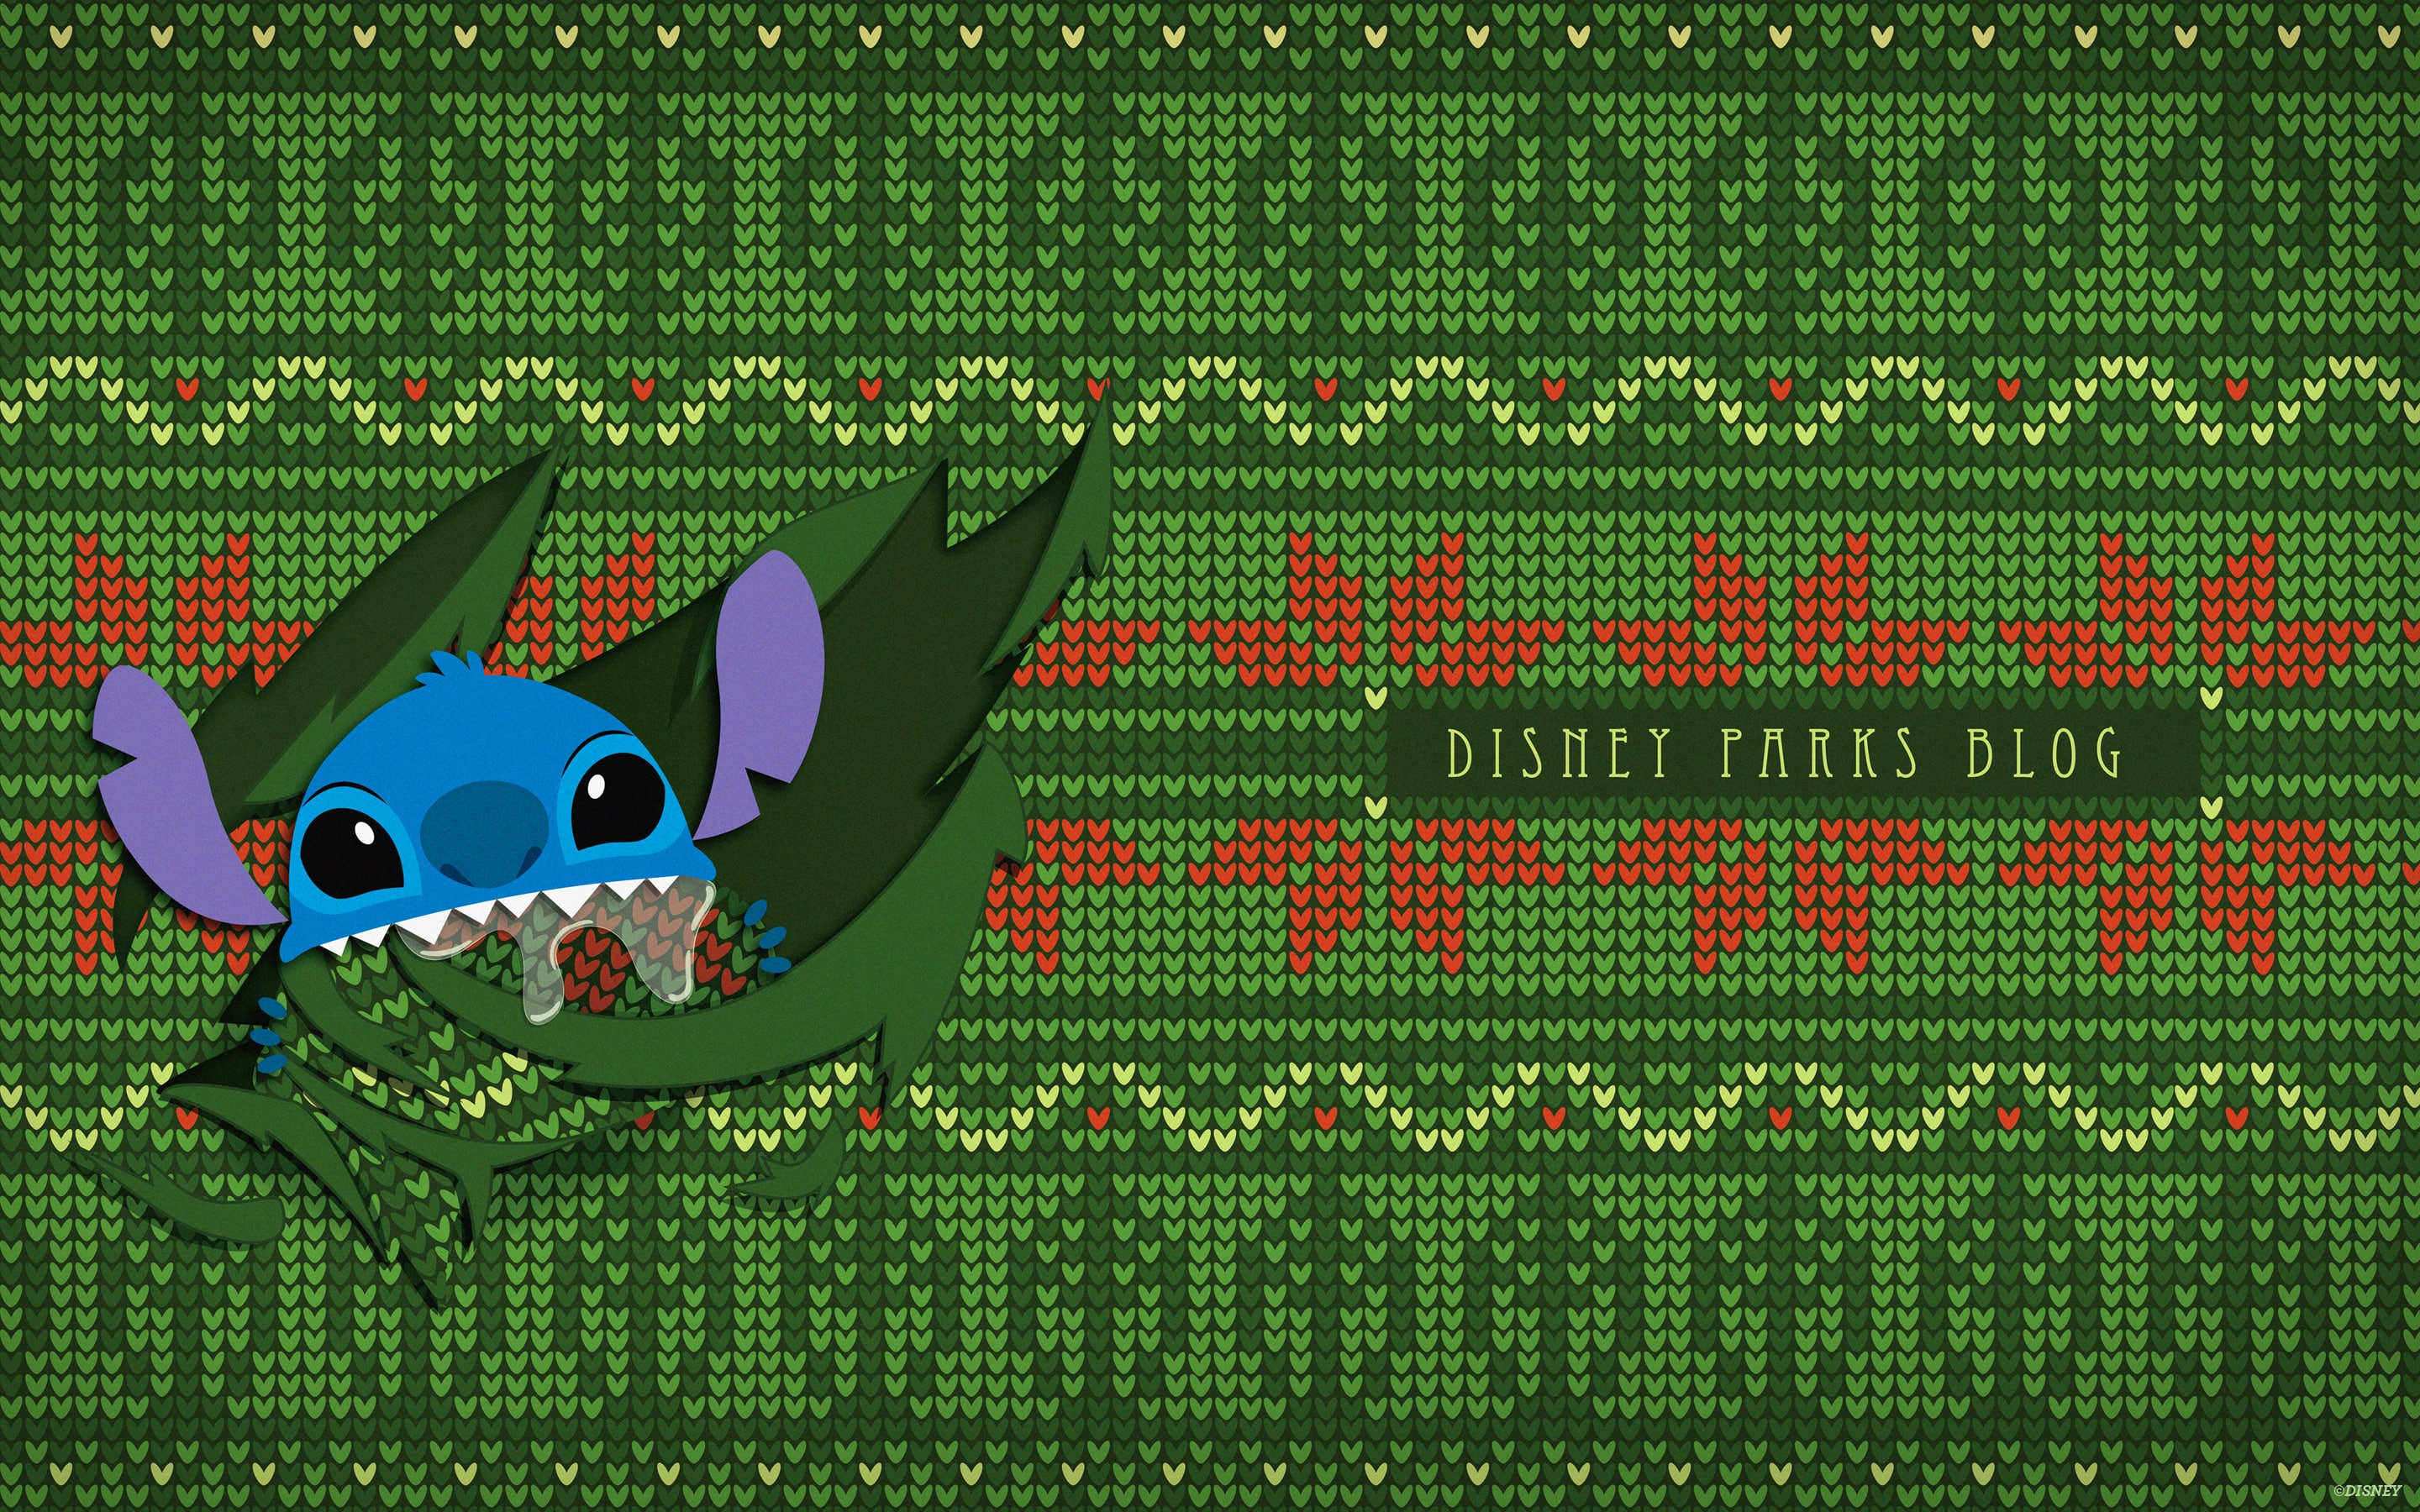 Ugly Christmas Sweater Wallpaper Featuring Stitch Desktop Disney Parks Blog